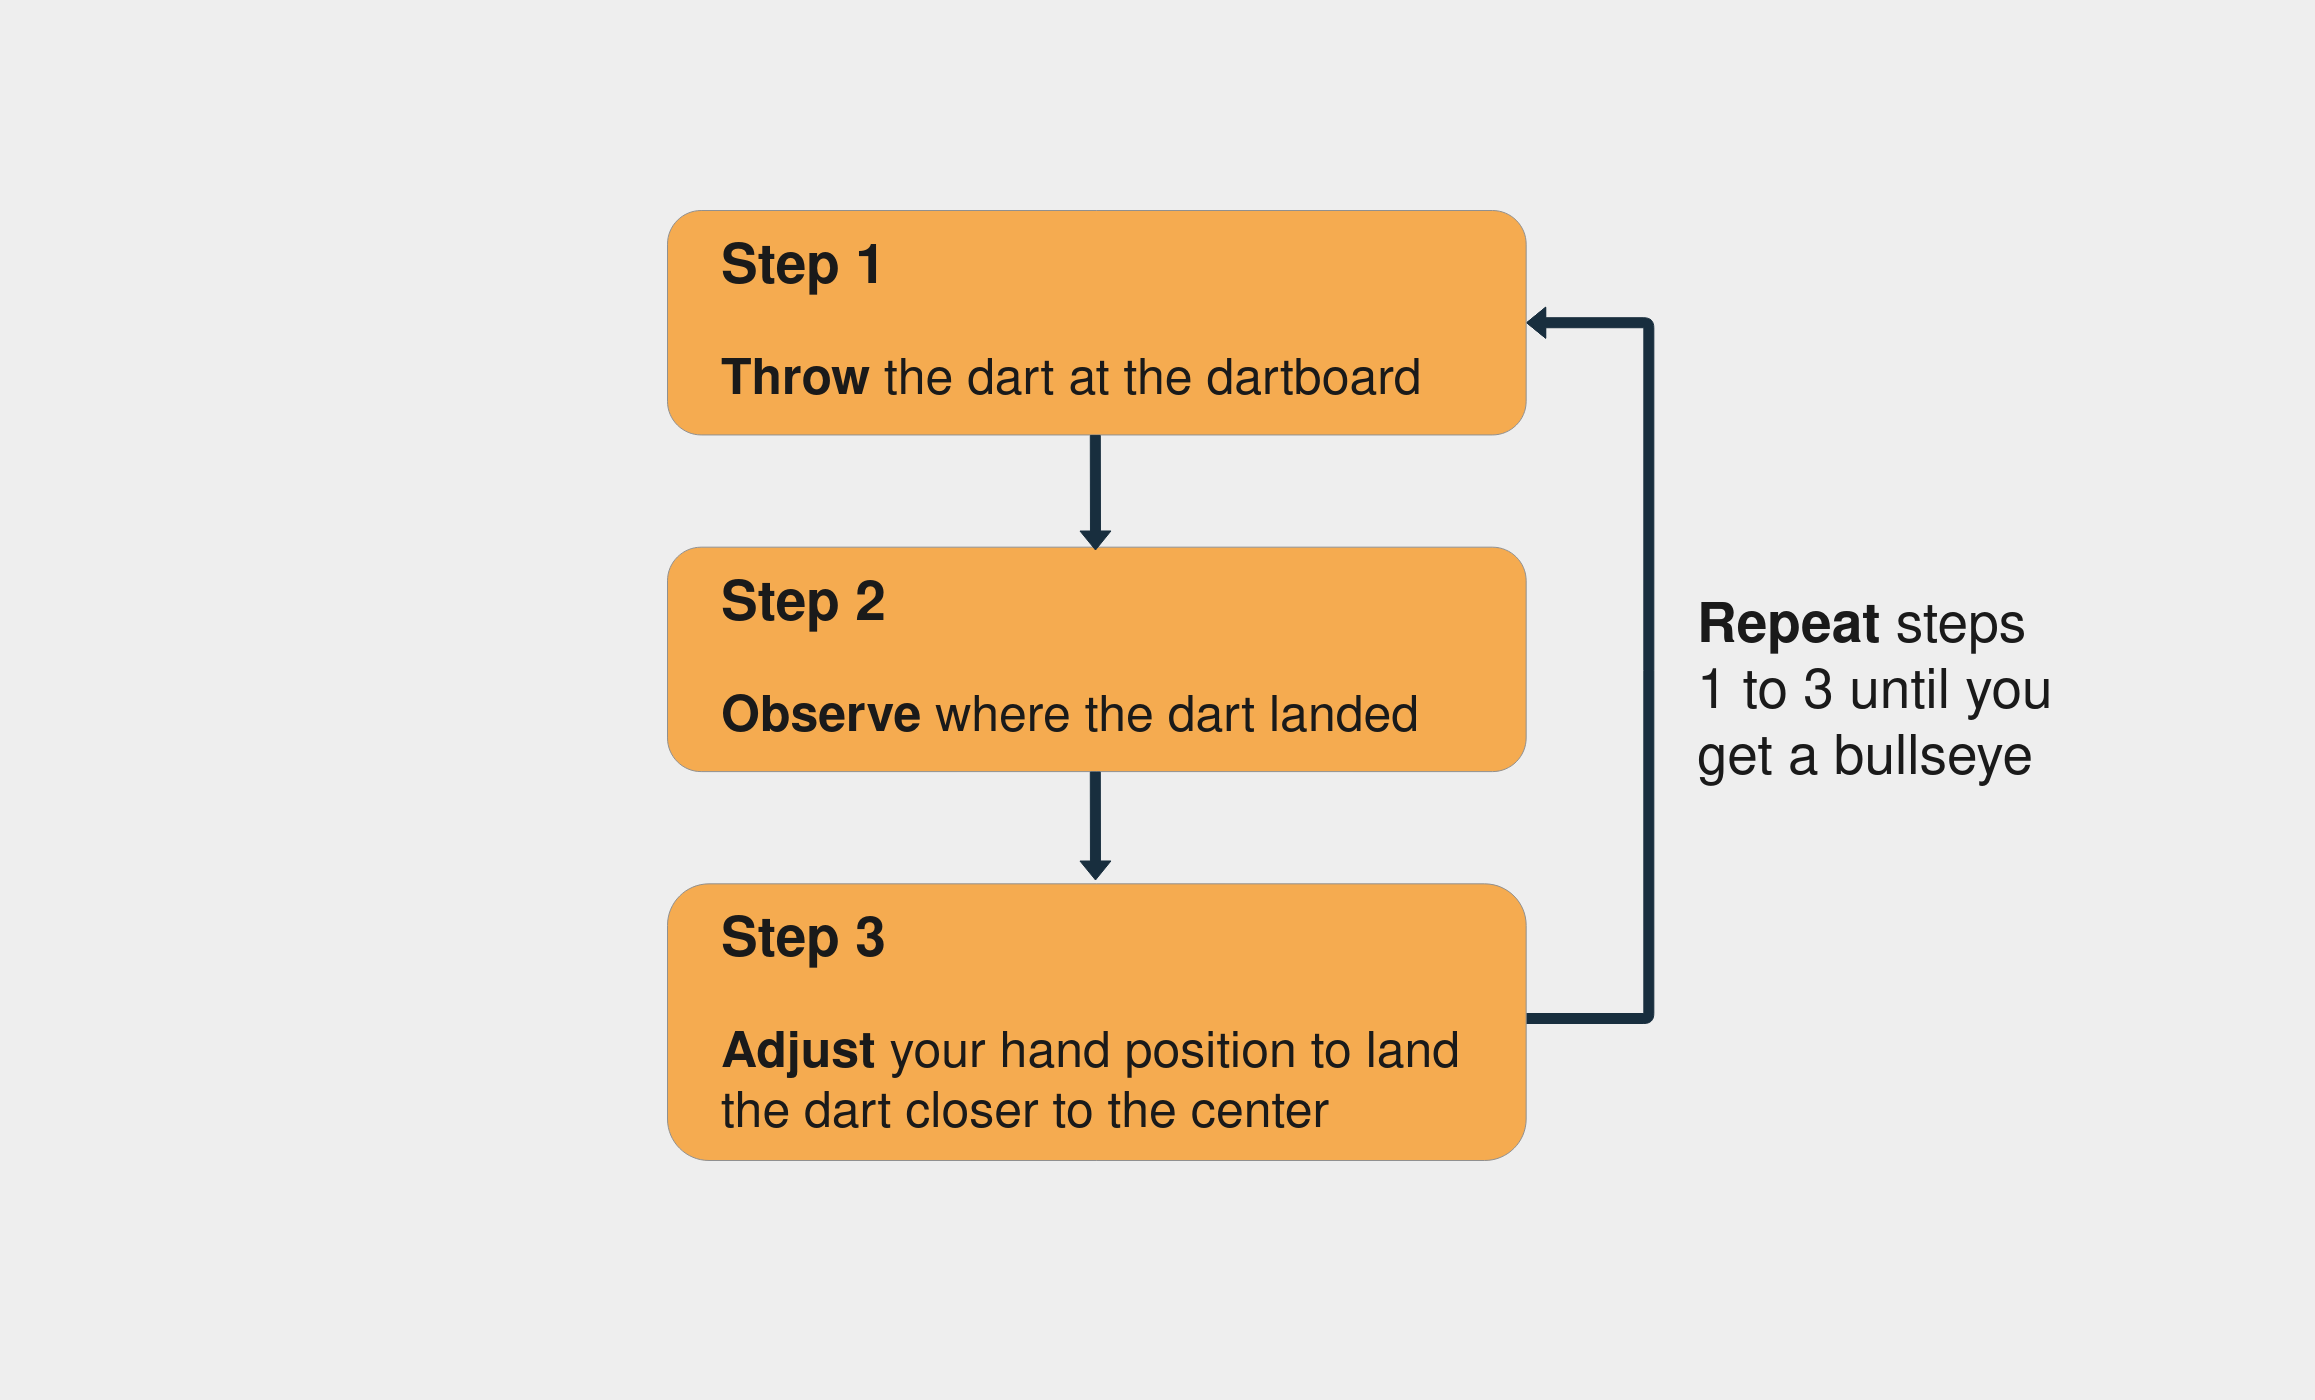 The steps to throwing dart